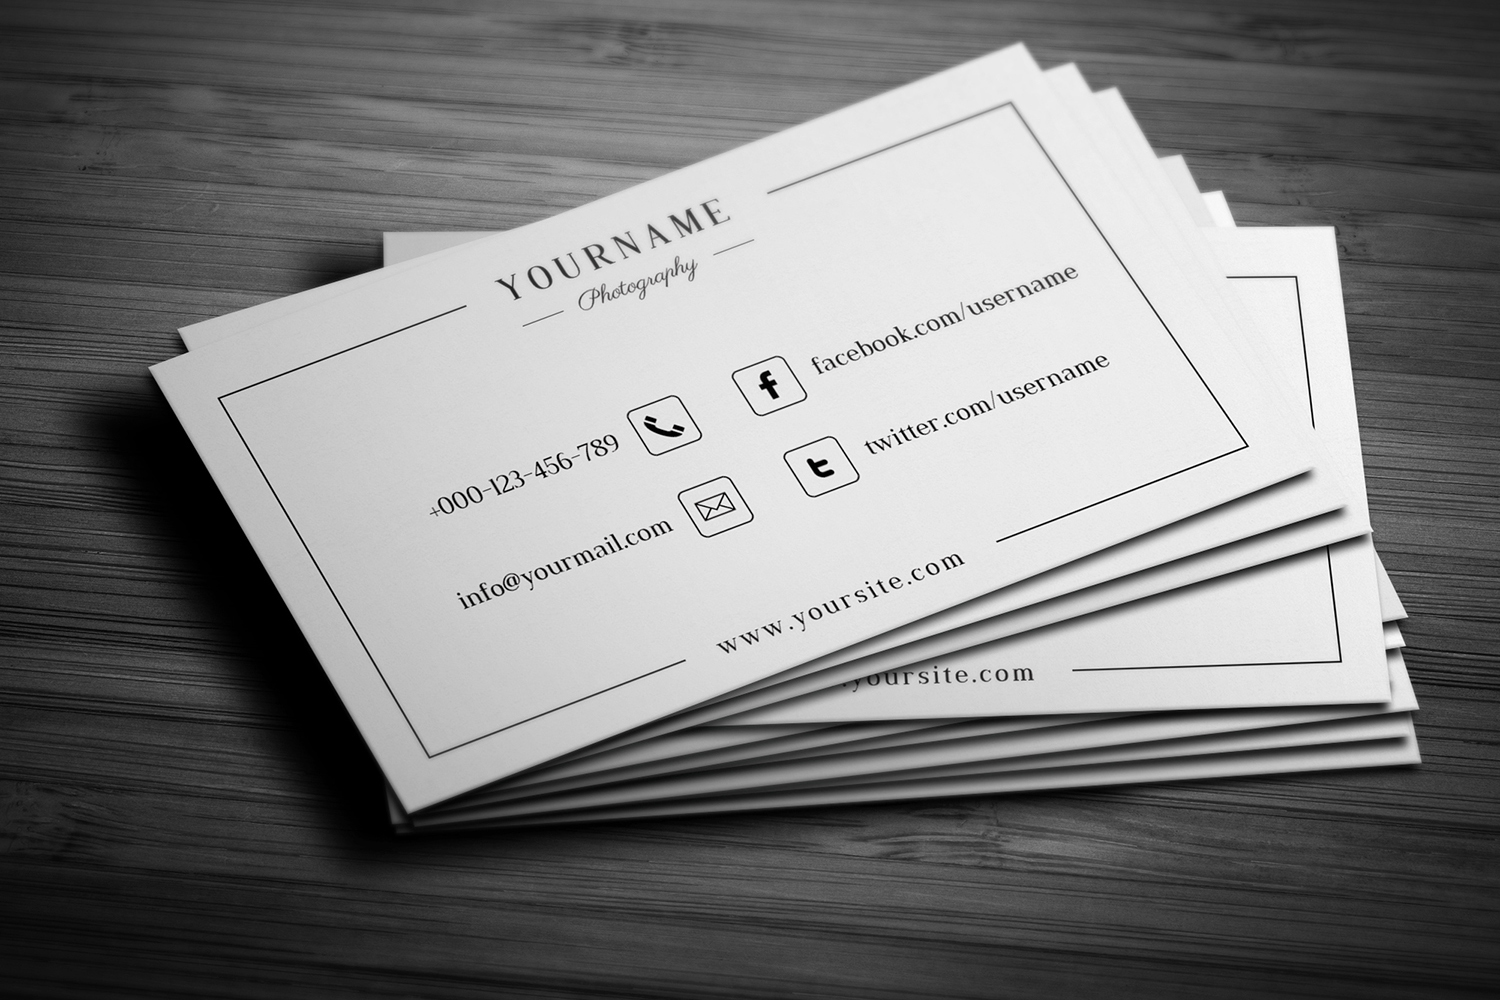 Minimal Wedding Photography Business Card  example image 5